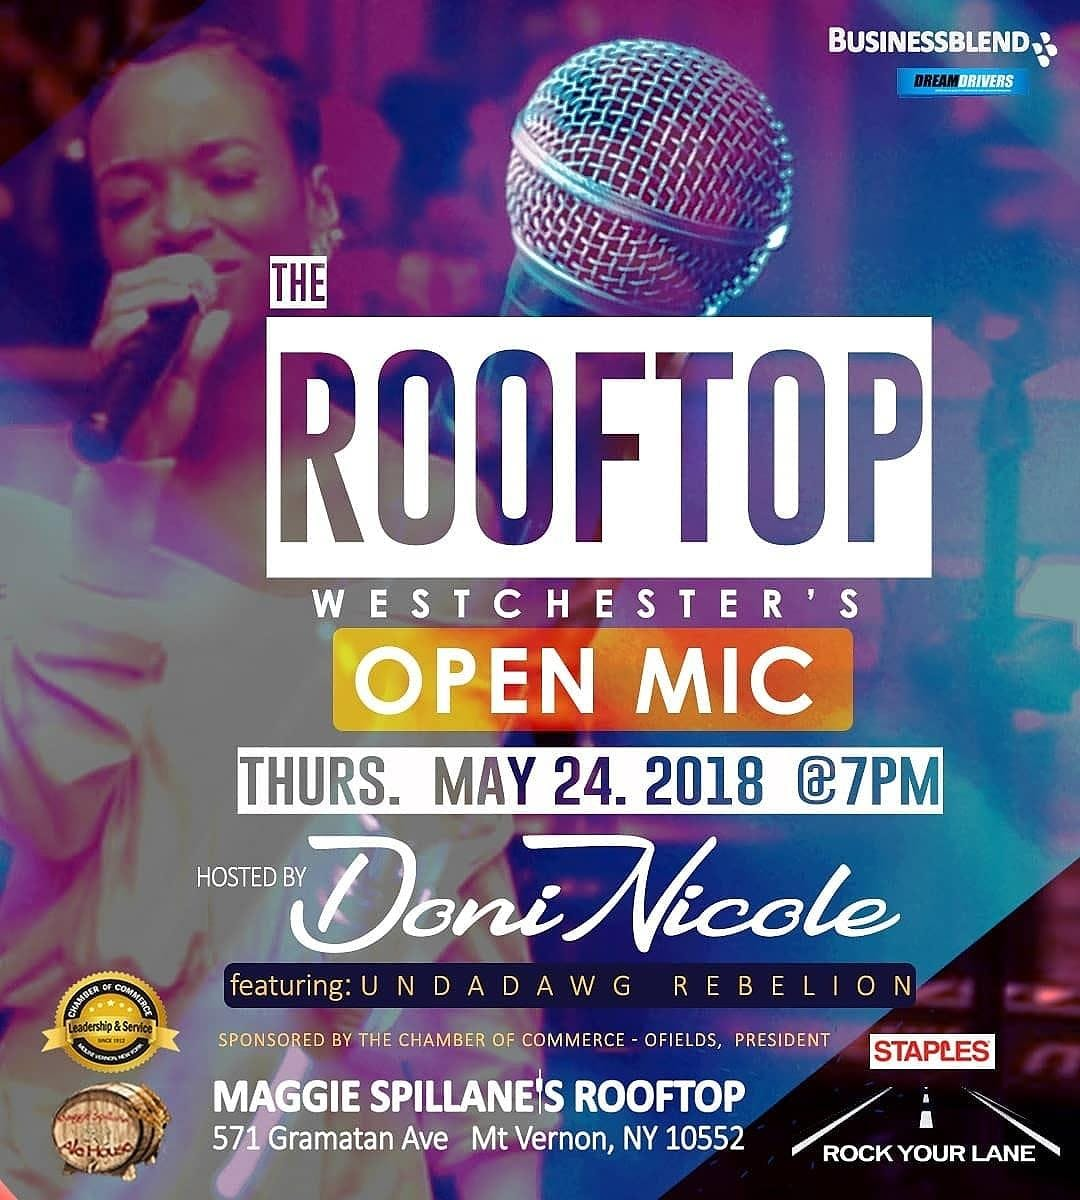 The Rooftop Westchesters Open Mic